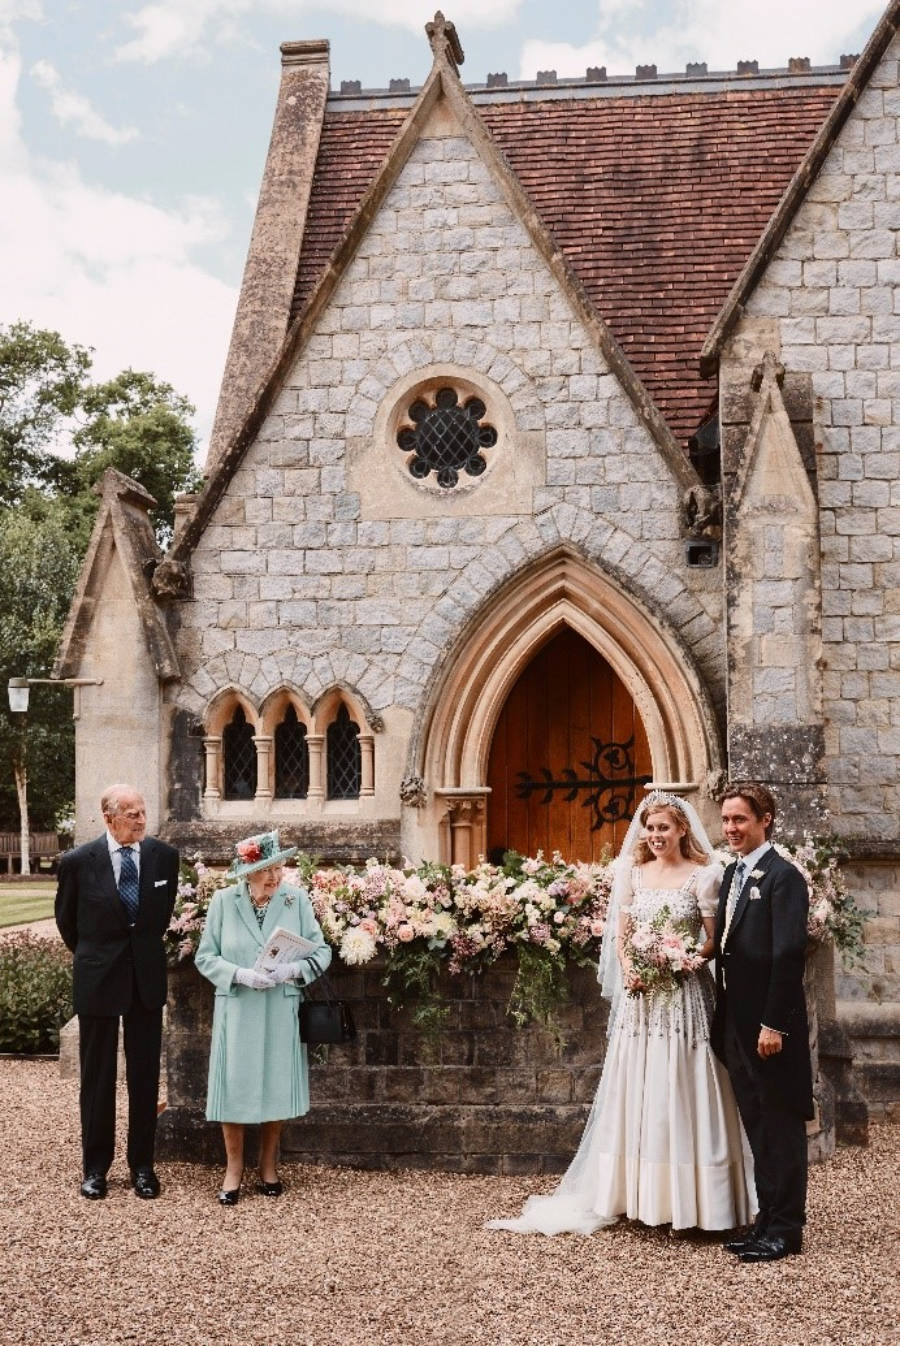 Queen's granddaughter, Princess Beatrice's marries in secret